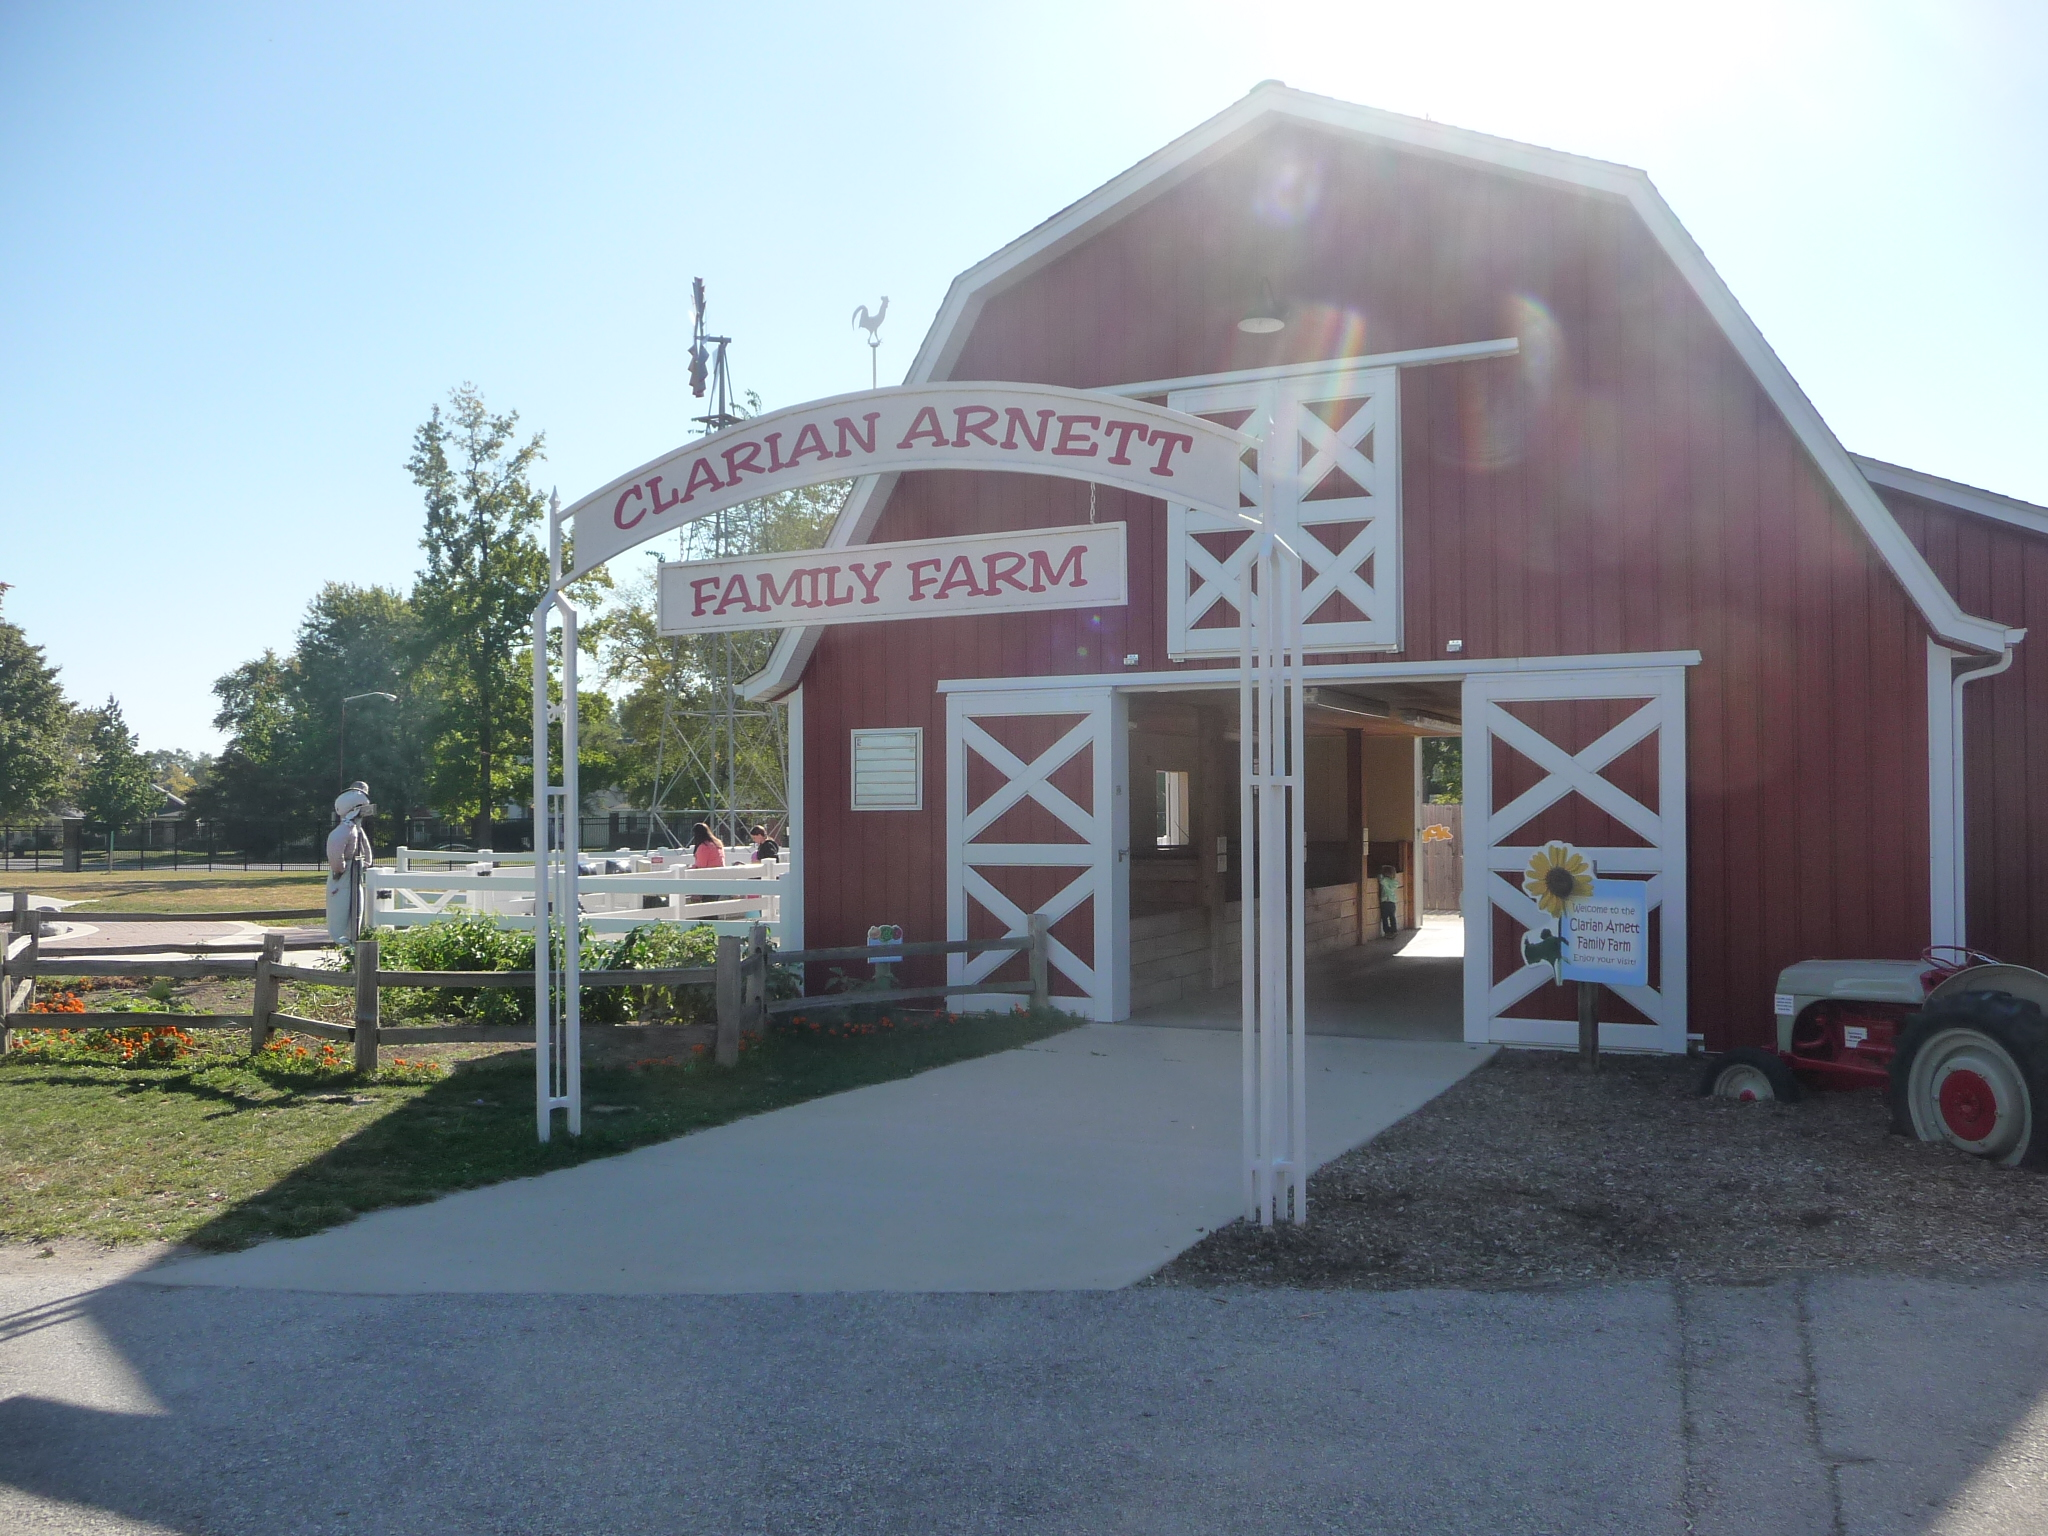 Family Farm exhibit entrance